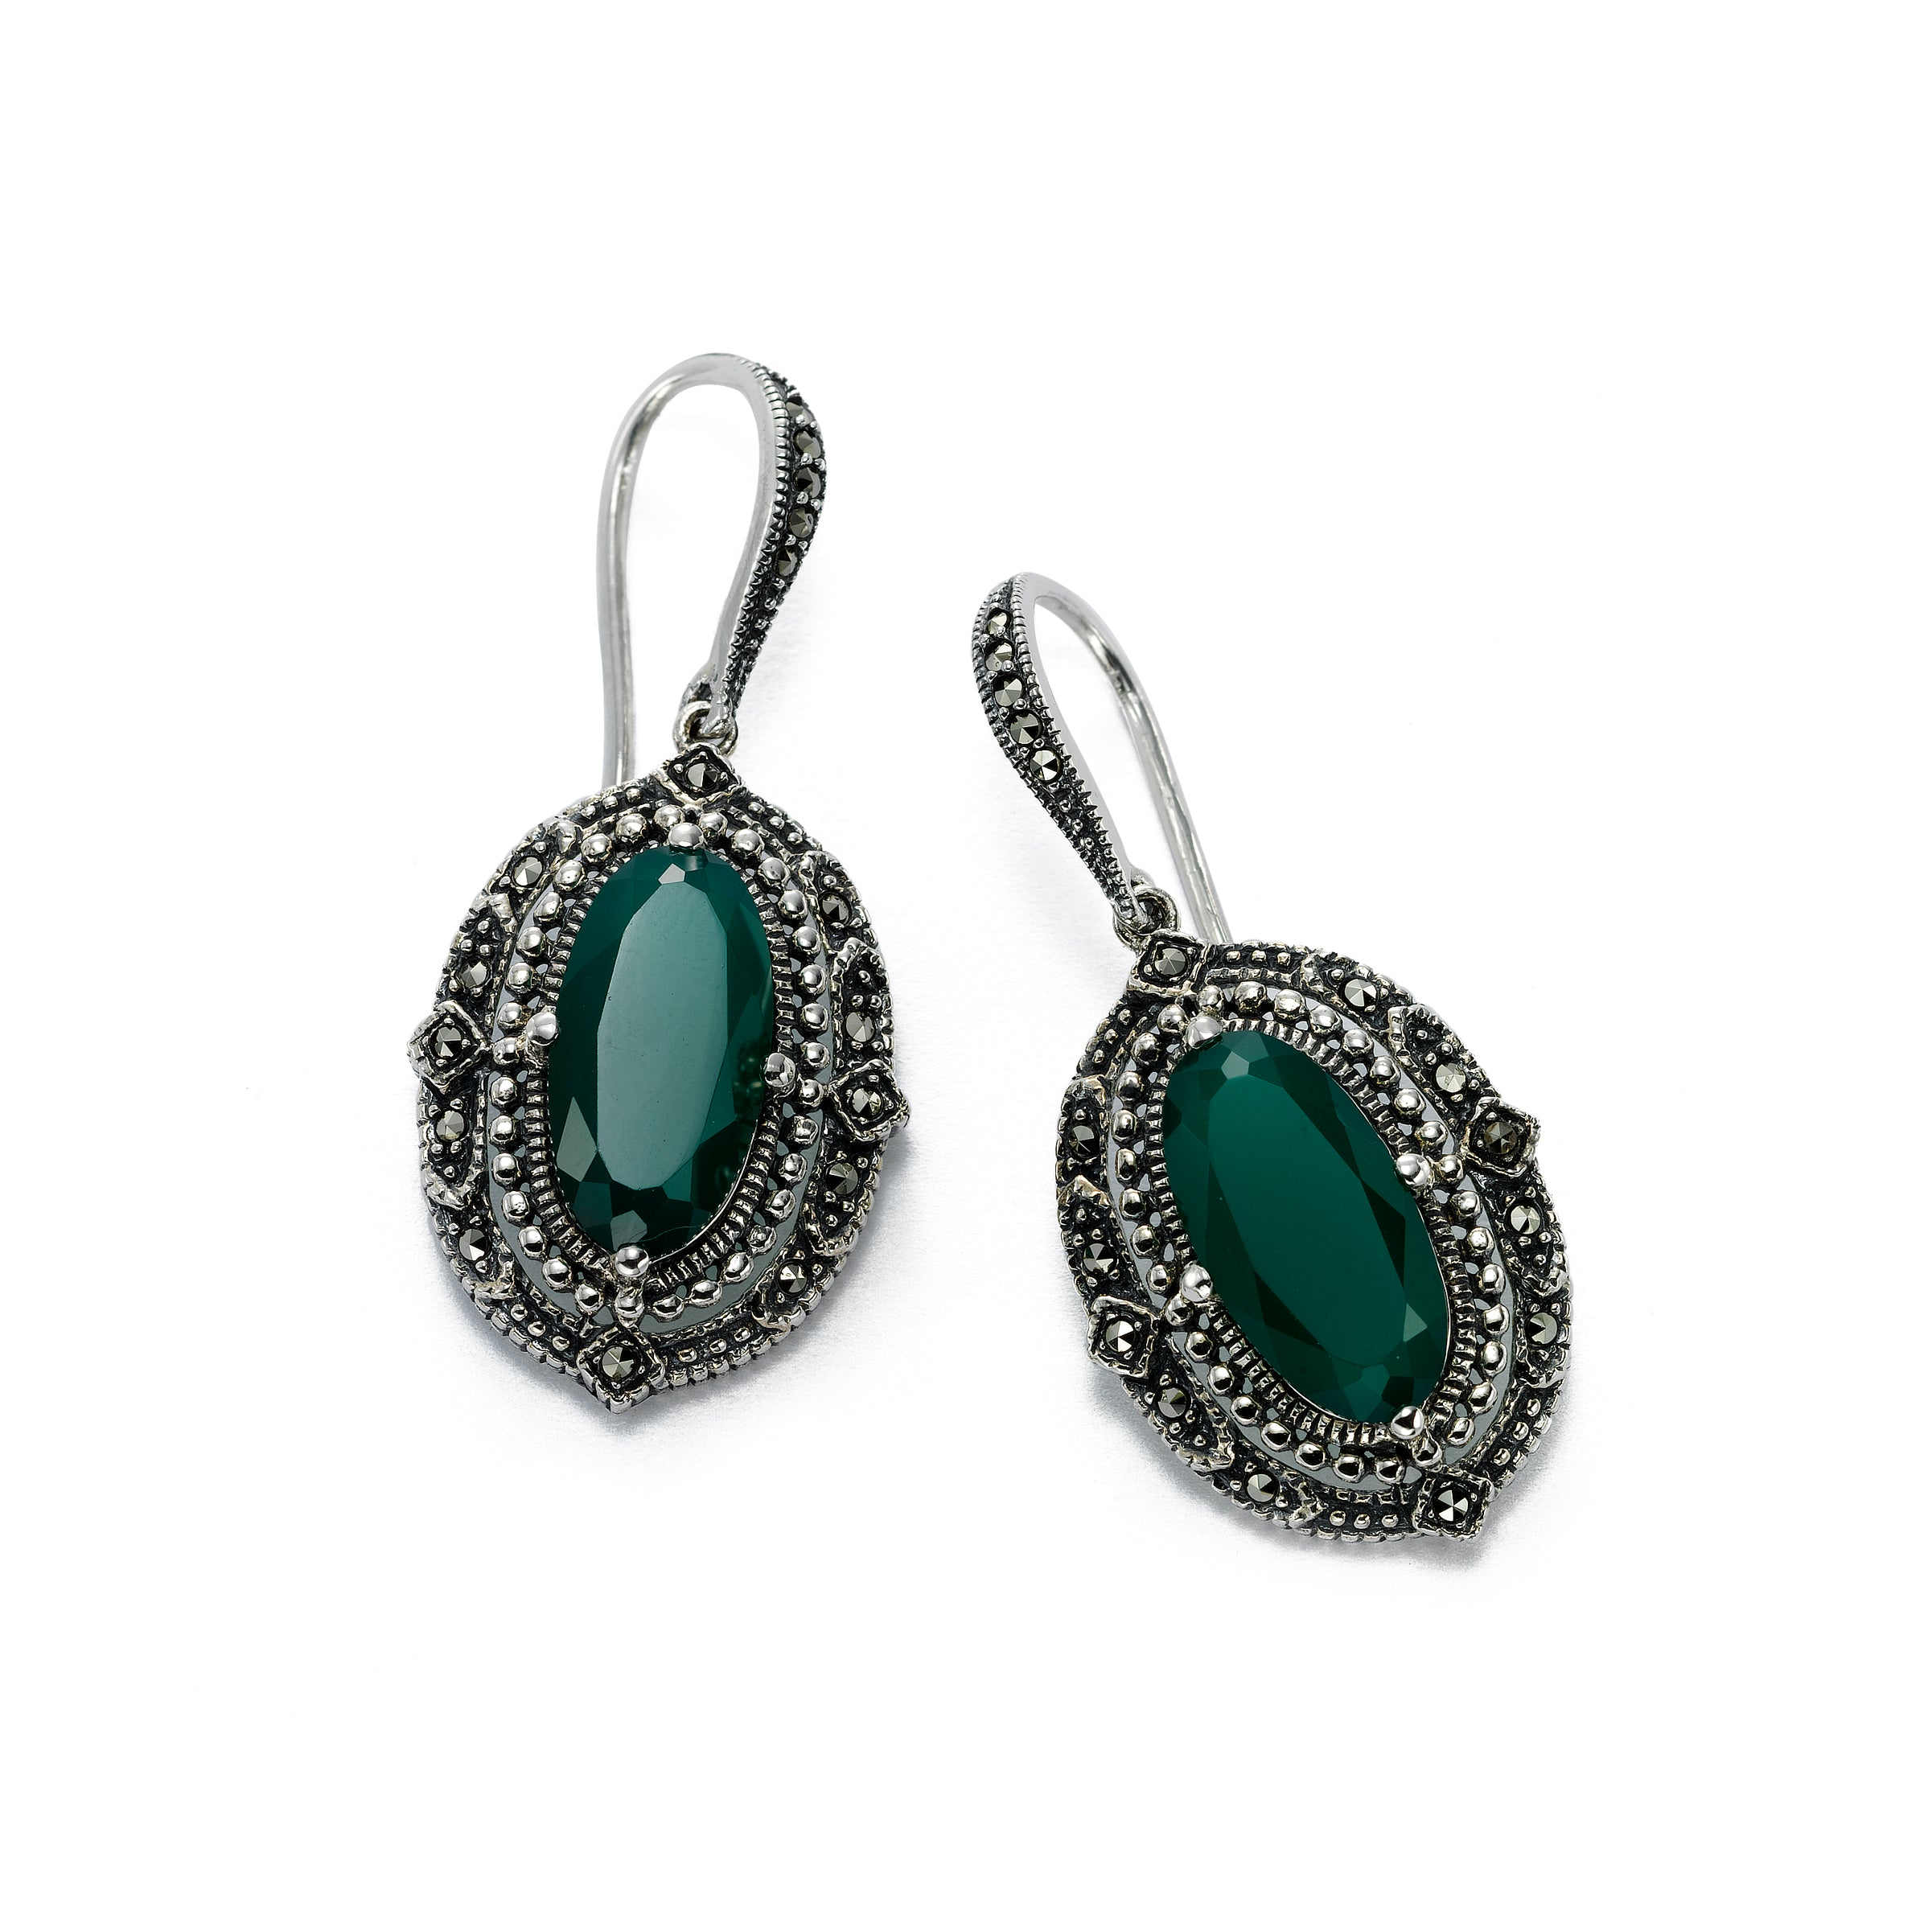 Swarovski Marcasite Earrings with Green Agate, Sterling Silver